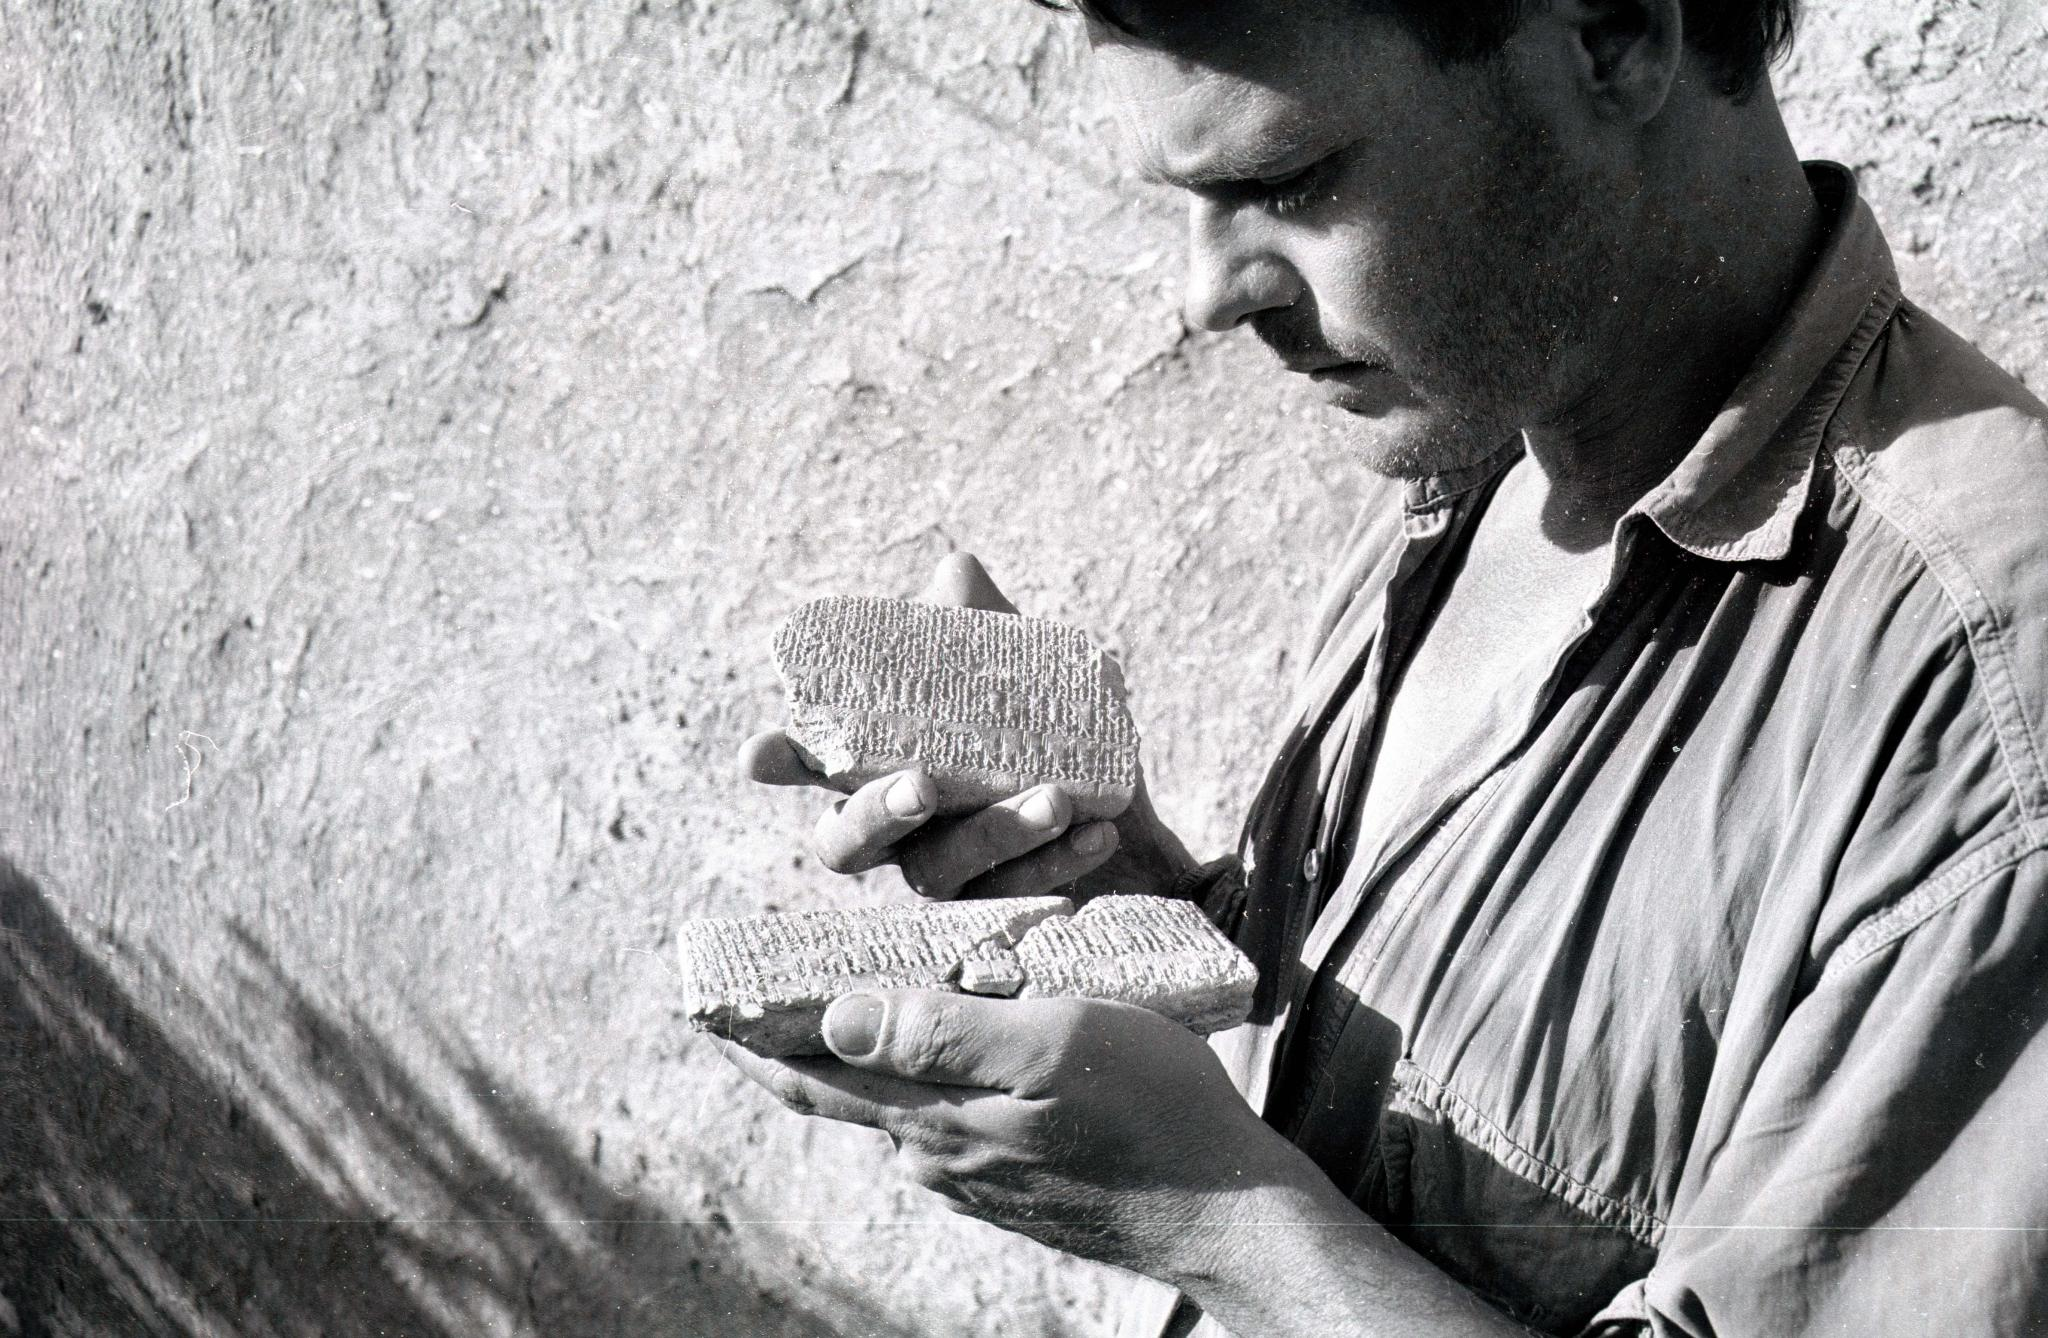 Peter Akkermans studying two clay tablets found at Tell Sabi Abyad